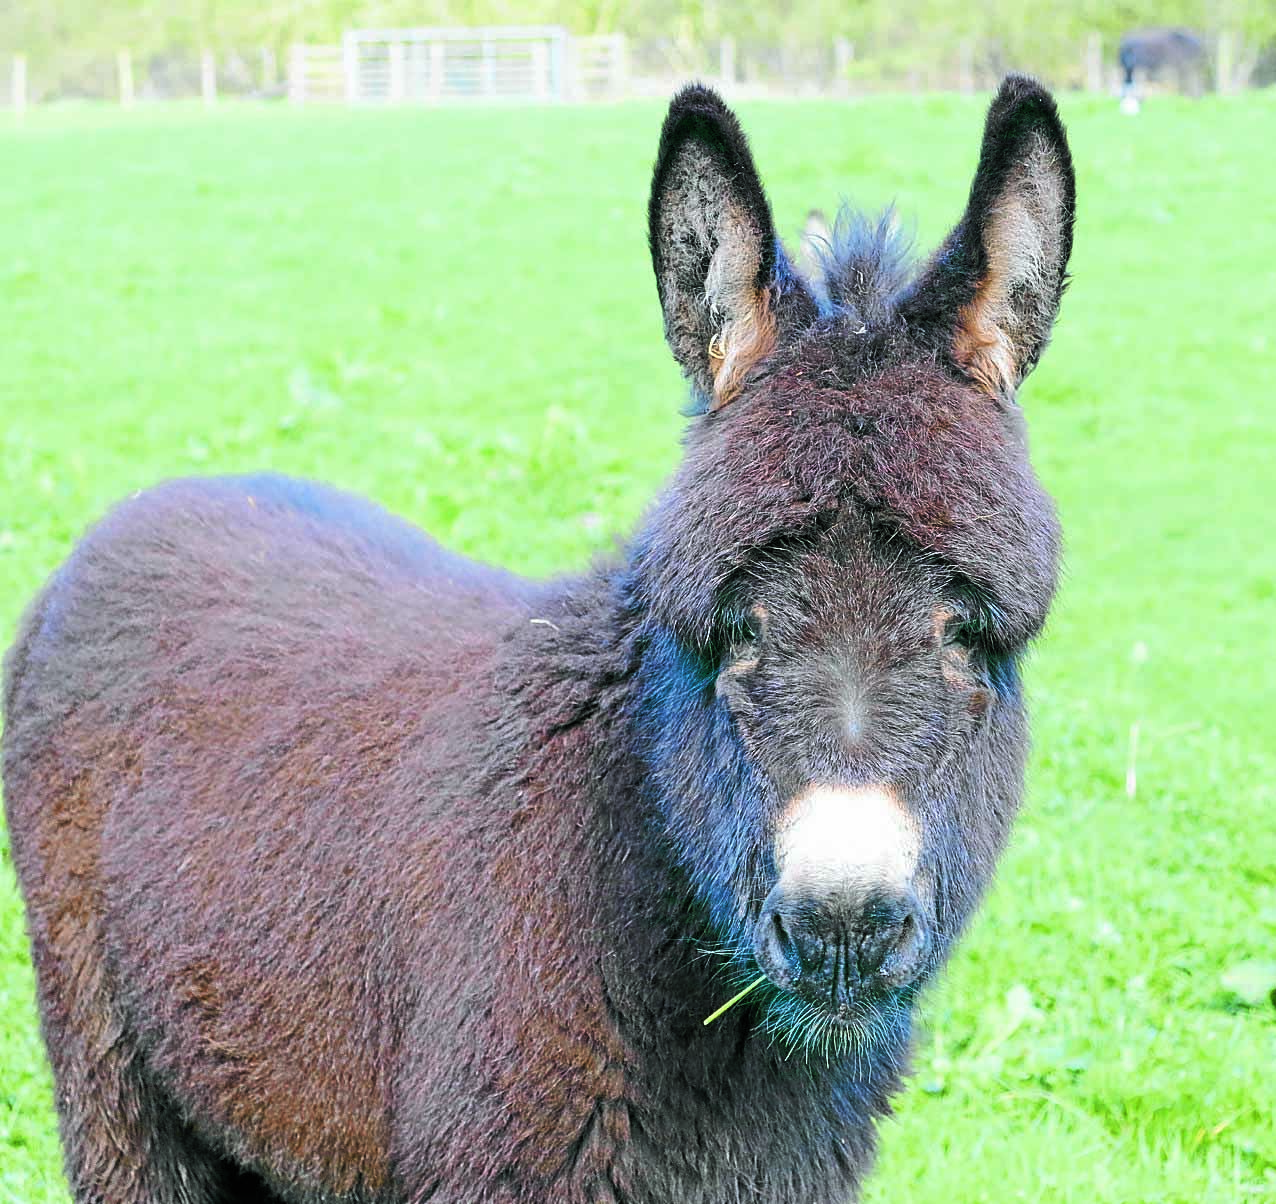 Ghost horse pops up in donkey photo - can you see it?